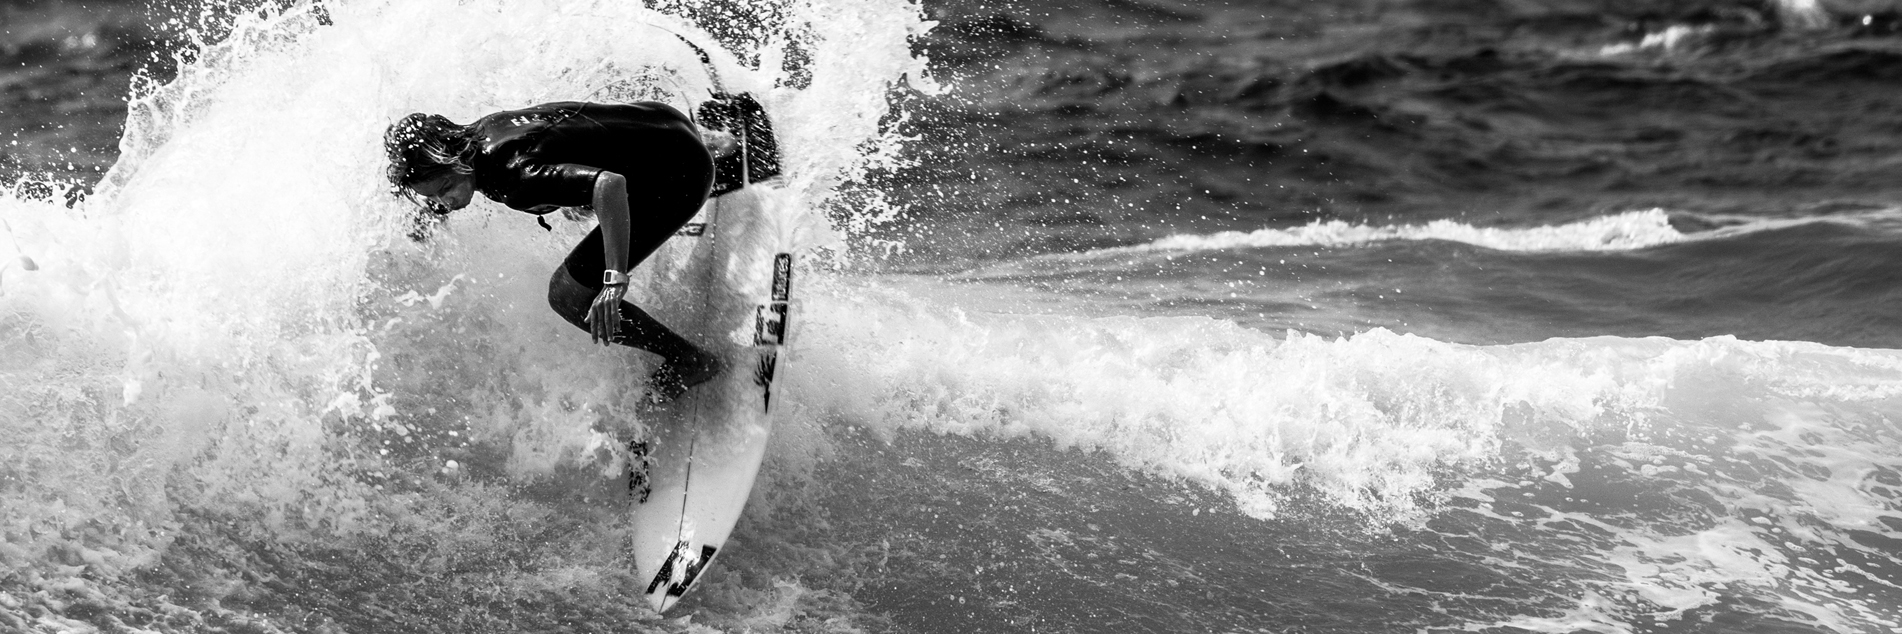 RTSurfboards_witch-04e